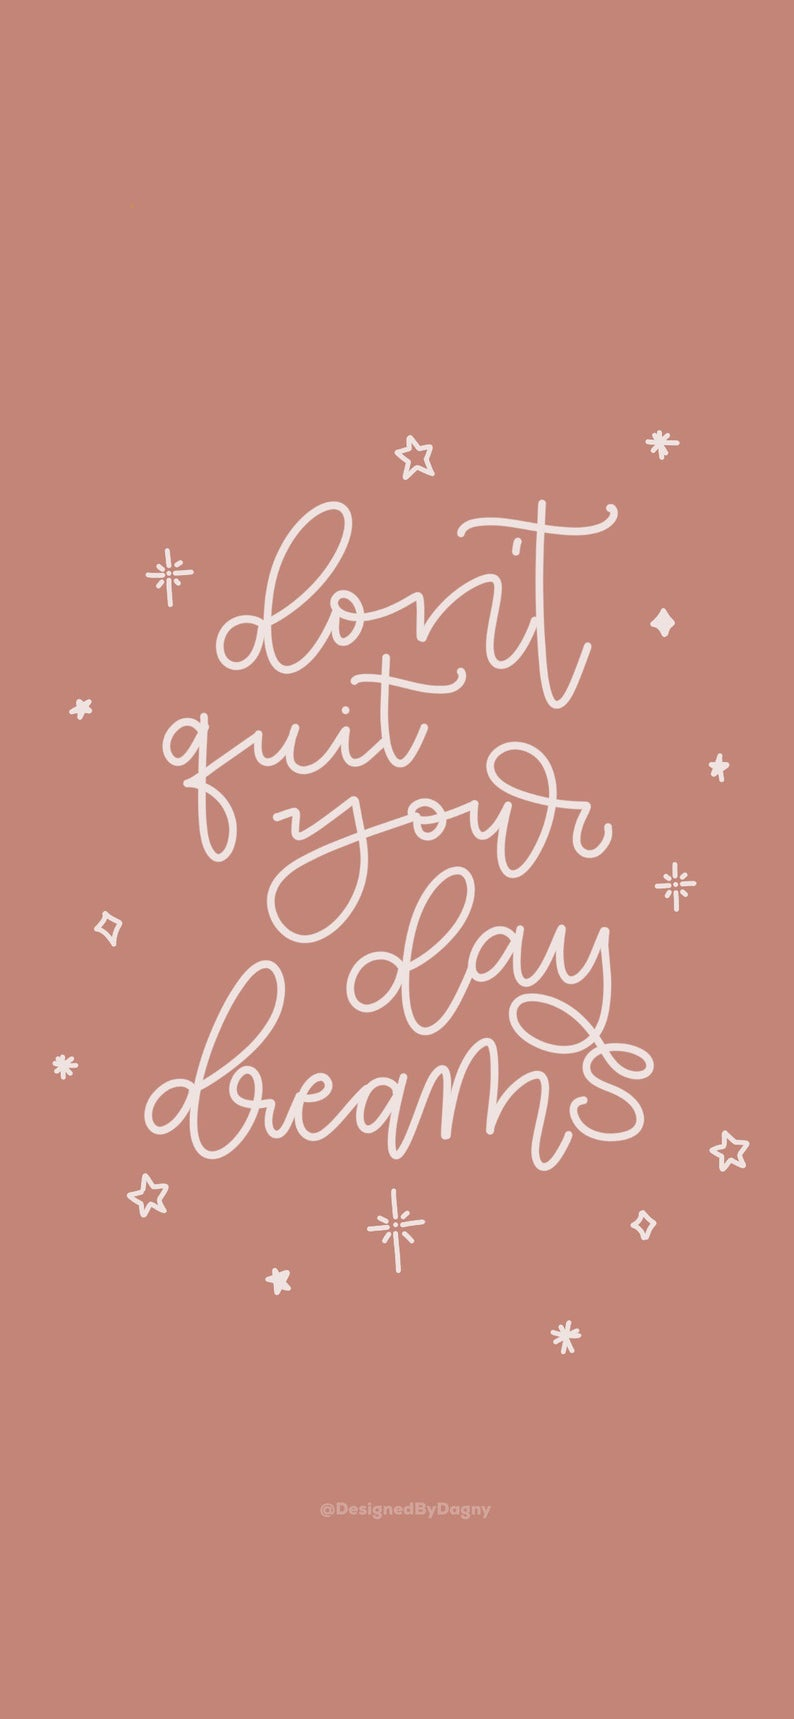 Don T Quit Your Daydreams Iphone Wallpaper Cell Phone Etsy Ipad Wallpaper Quotes Wallpaper Iphone Quotes Iphone Background Wallpaper